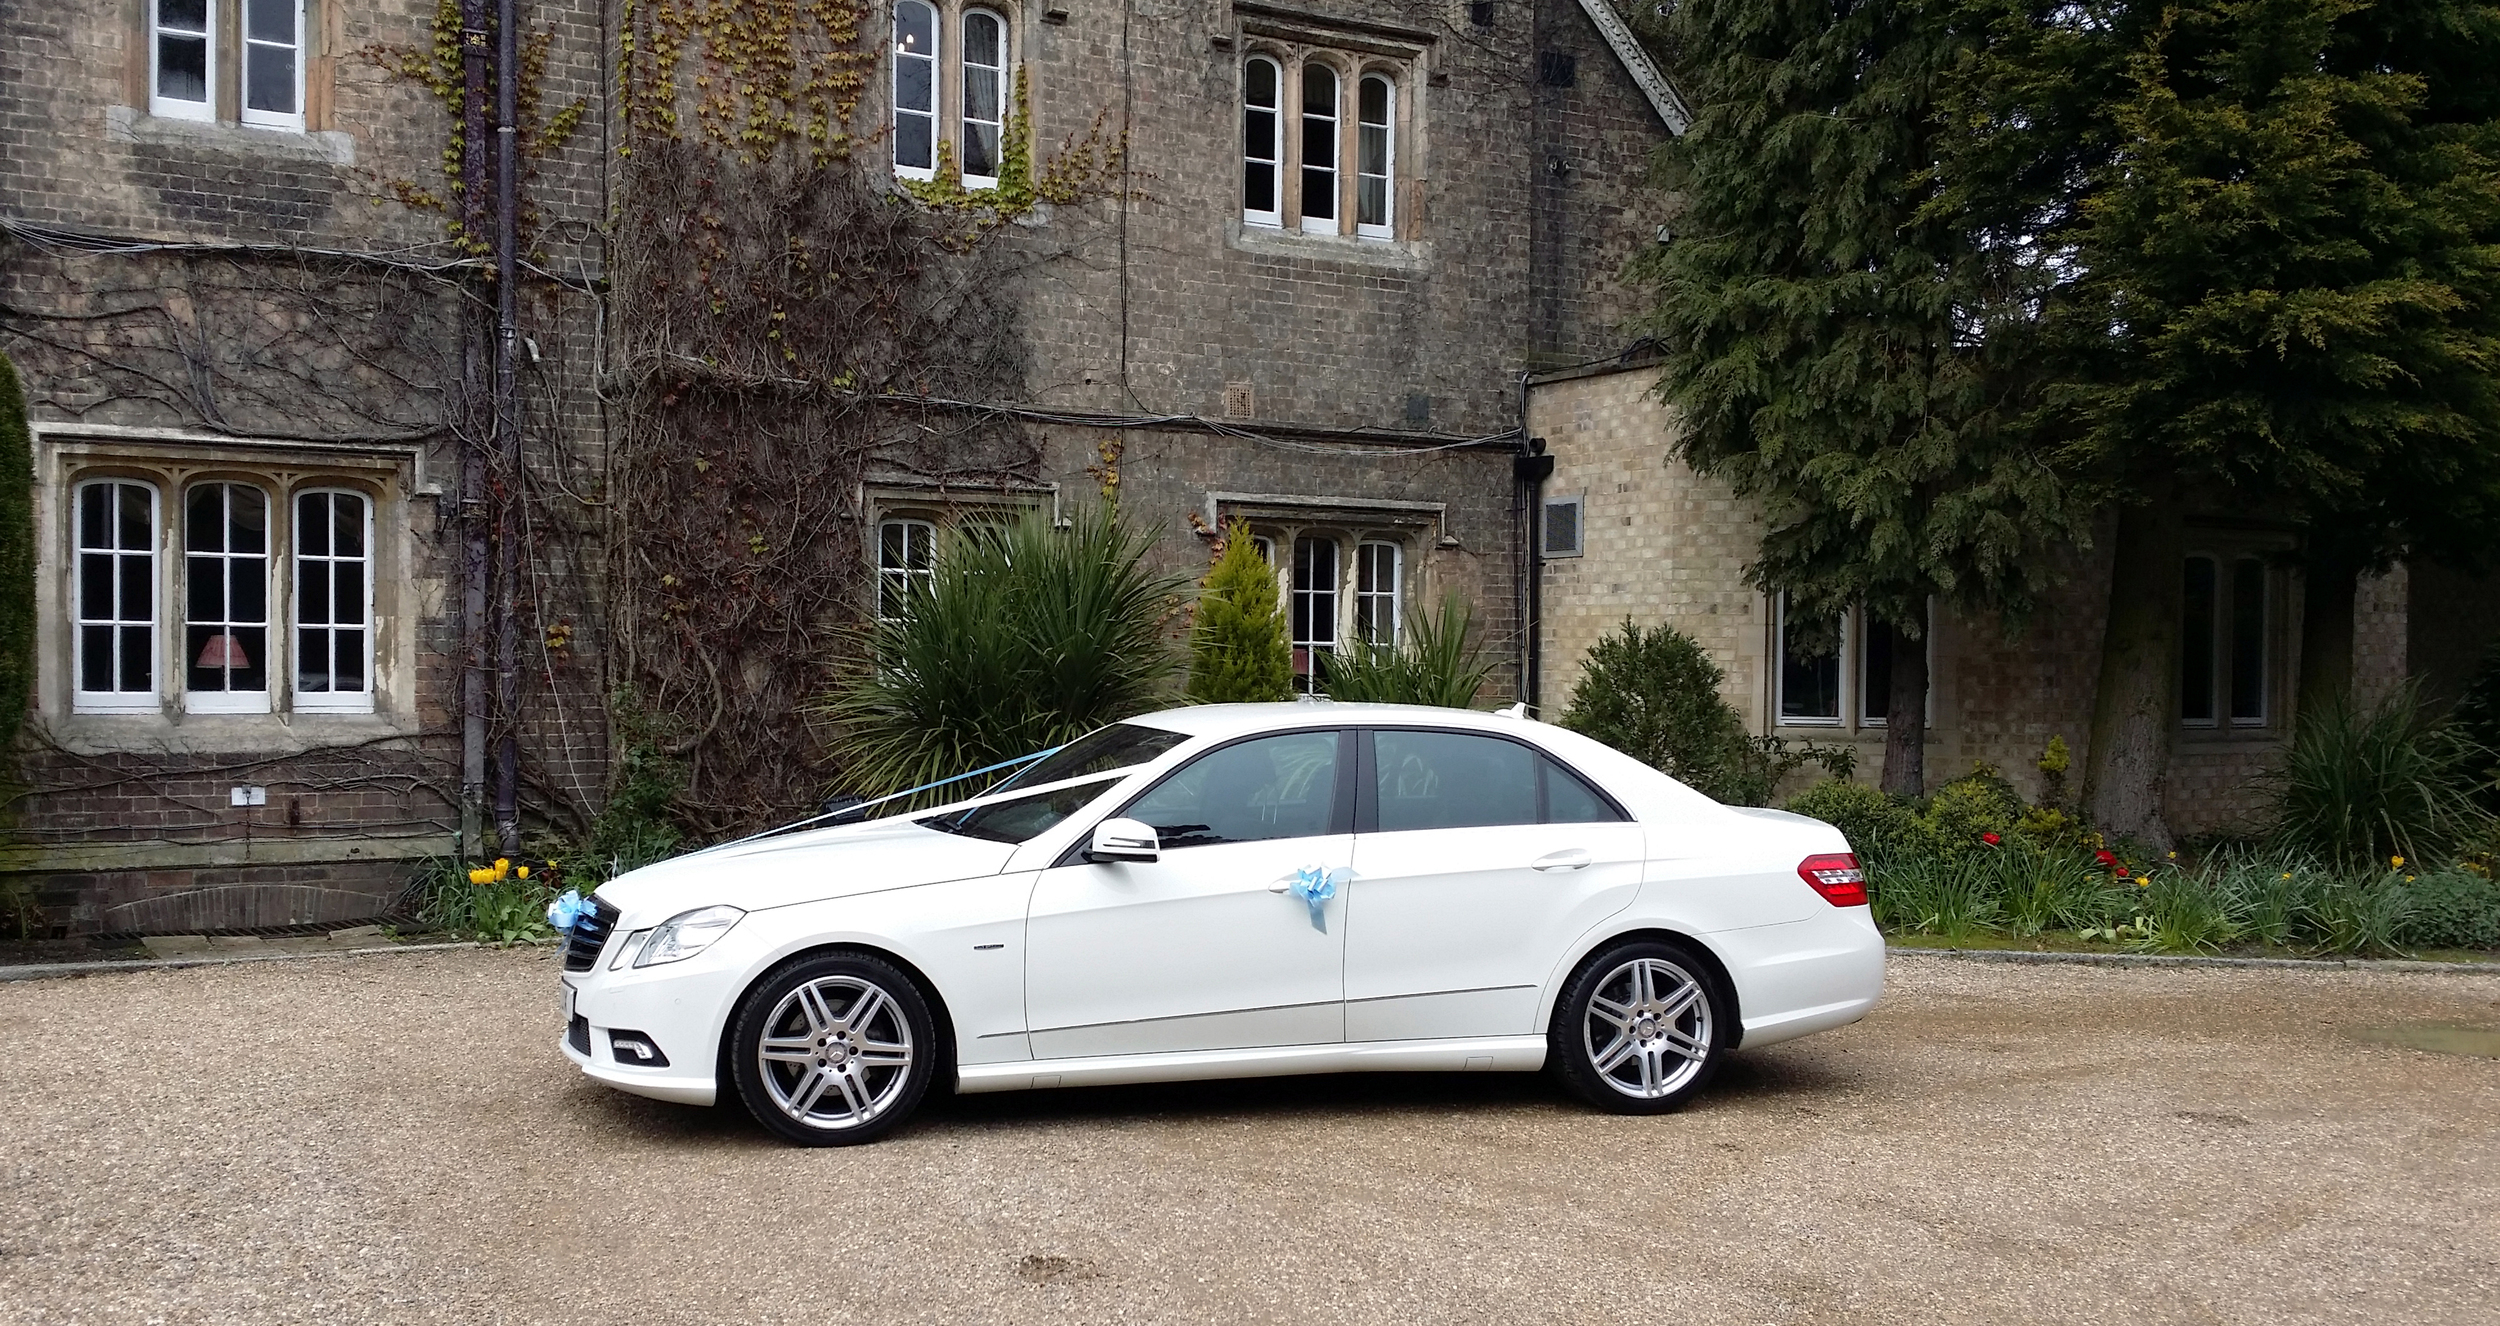 Groom's car at the Parsonage Hotel in York, North Yorkshire